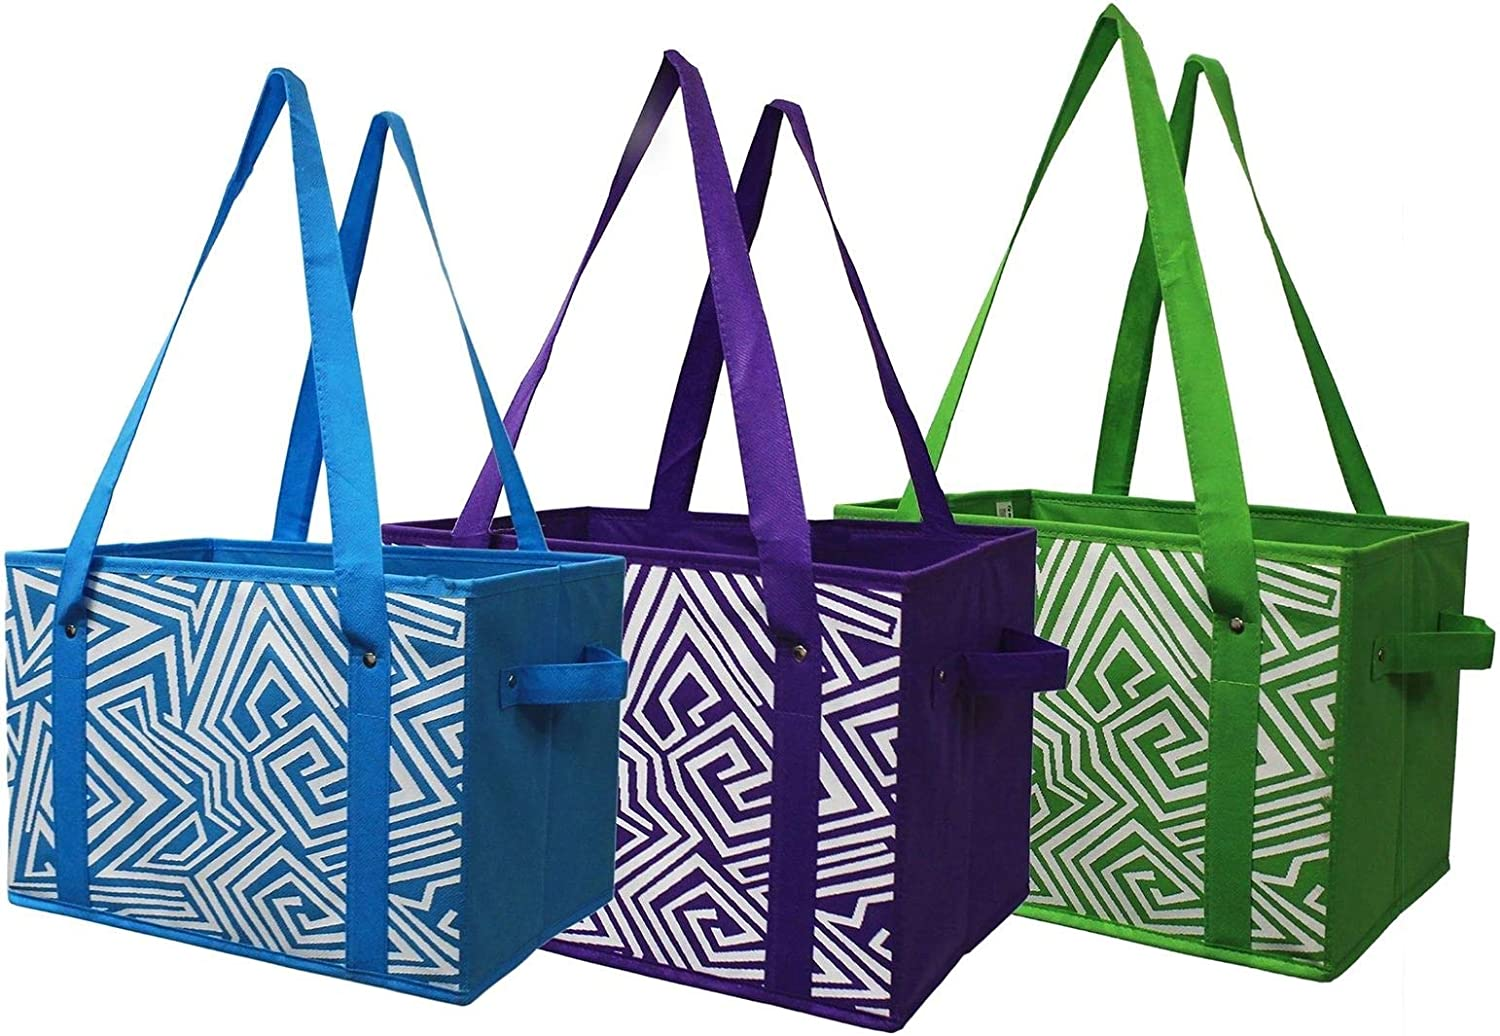 Always Ready collapsible tote bag